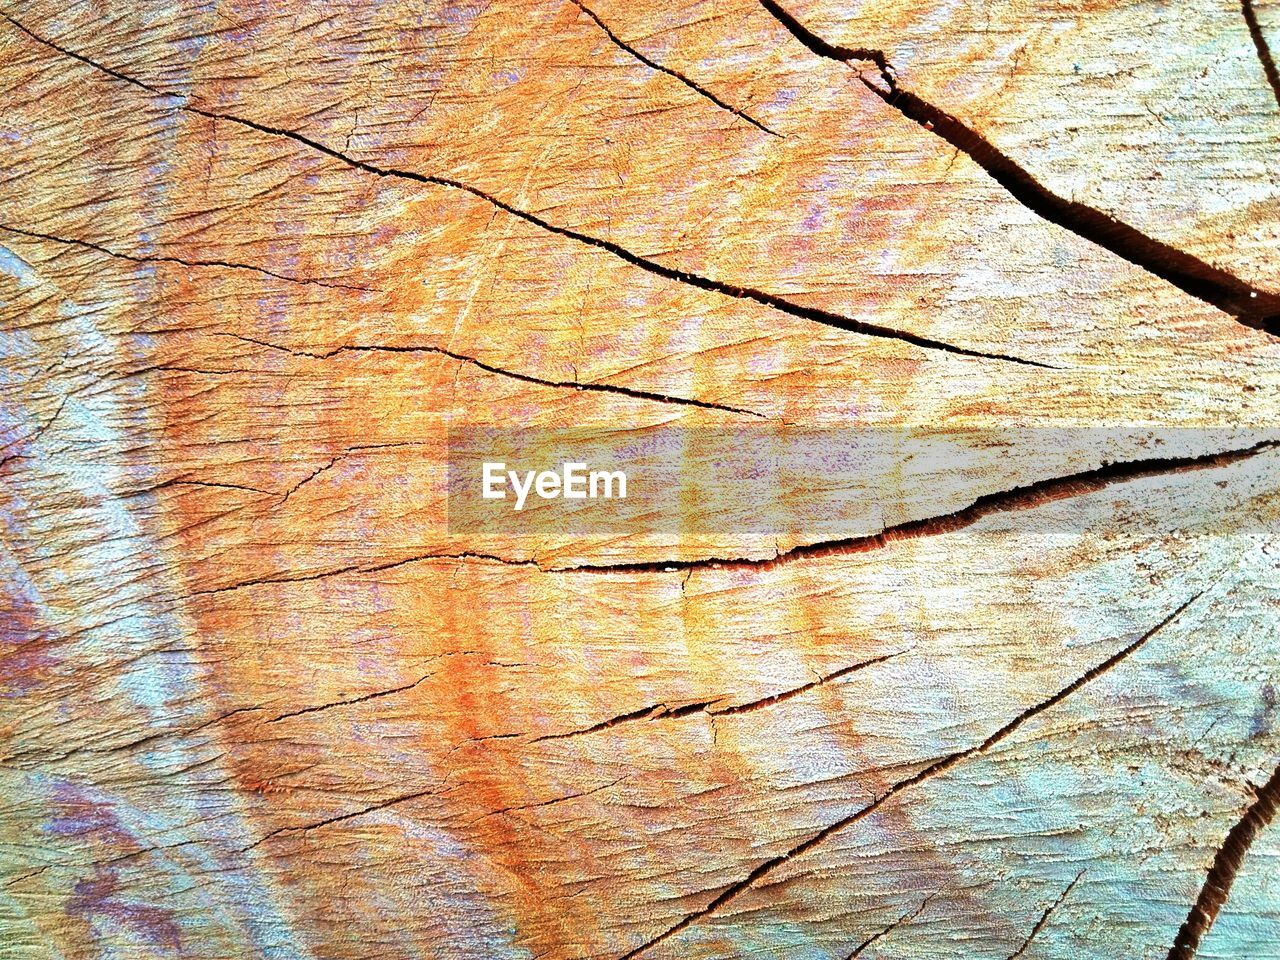 full frame, backgrounds, textured, wood - material, pattern, no people, close-up, day, rough, tree, plant, brown, cracked, outdoors, nature, natural pattern, bark, wood, weathered, plank, textured effect, wood grain